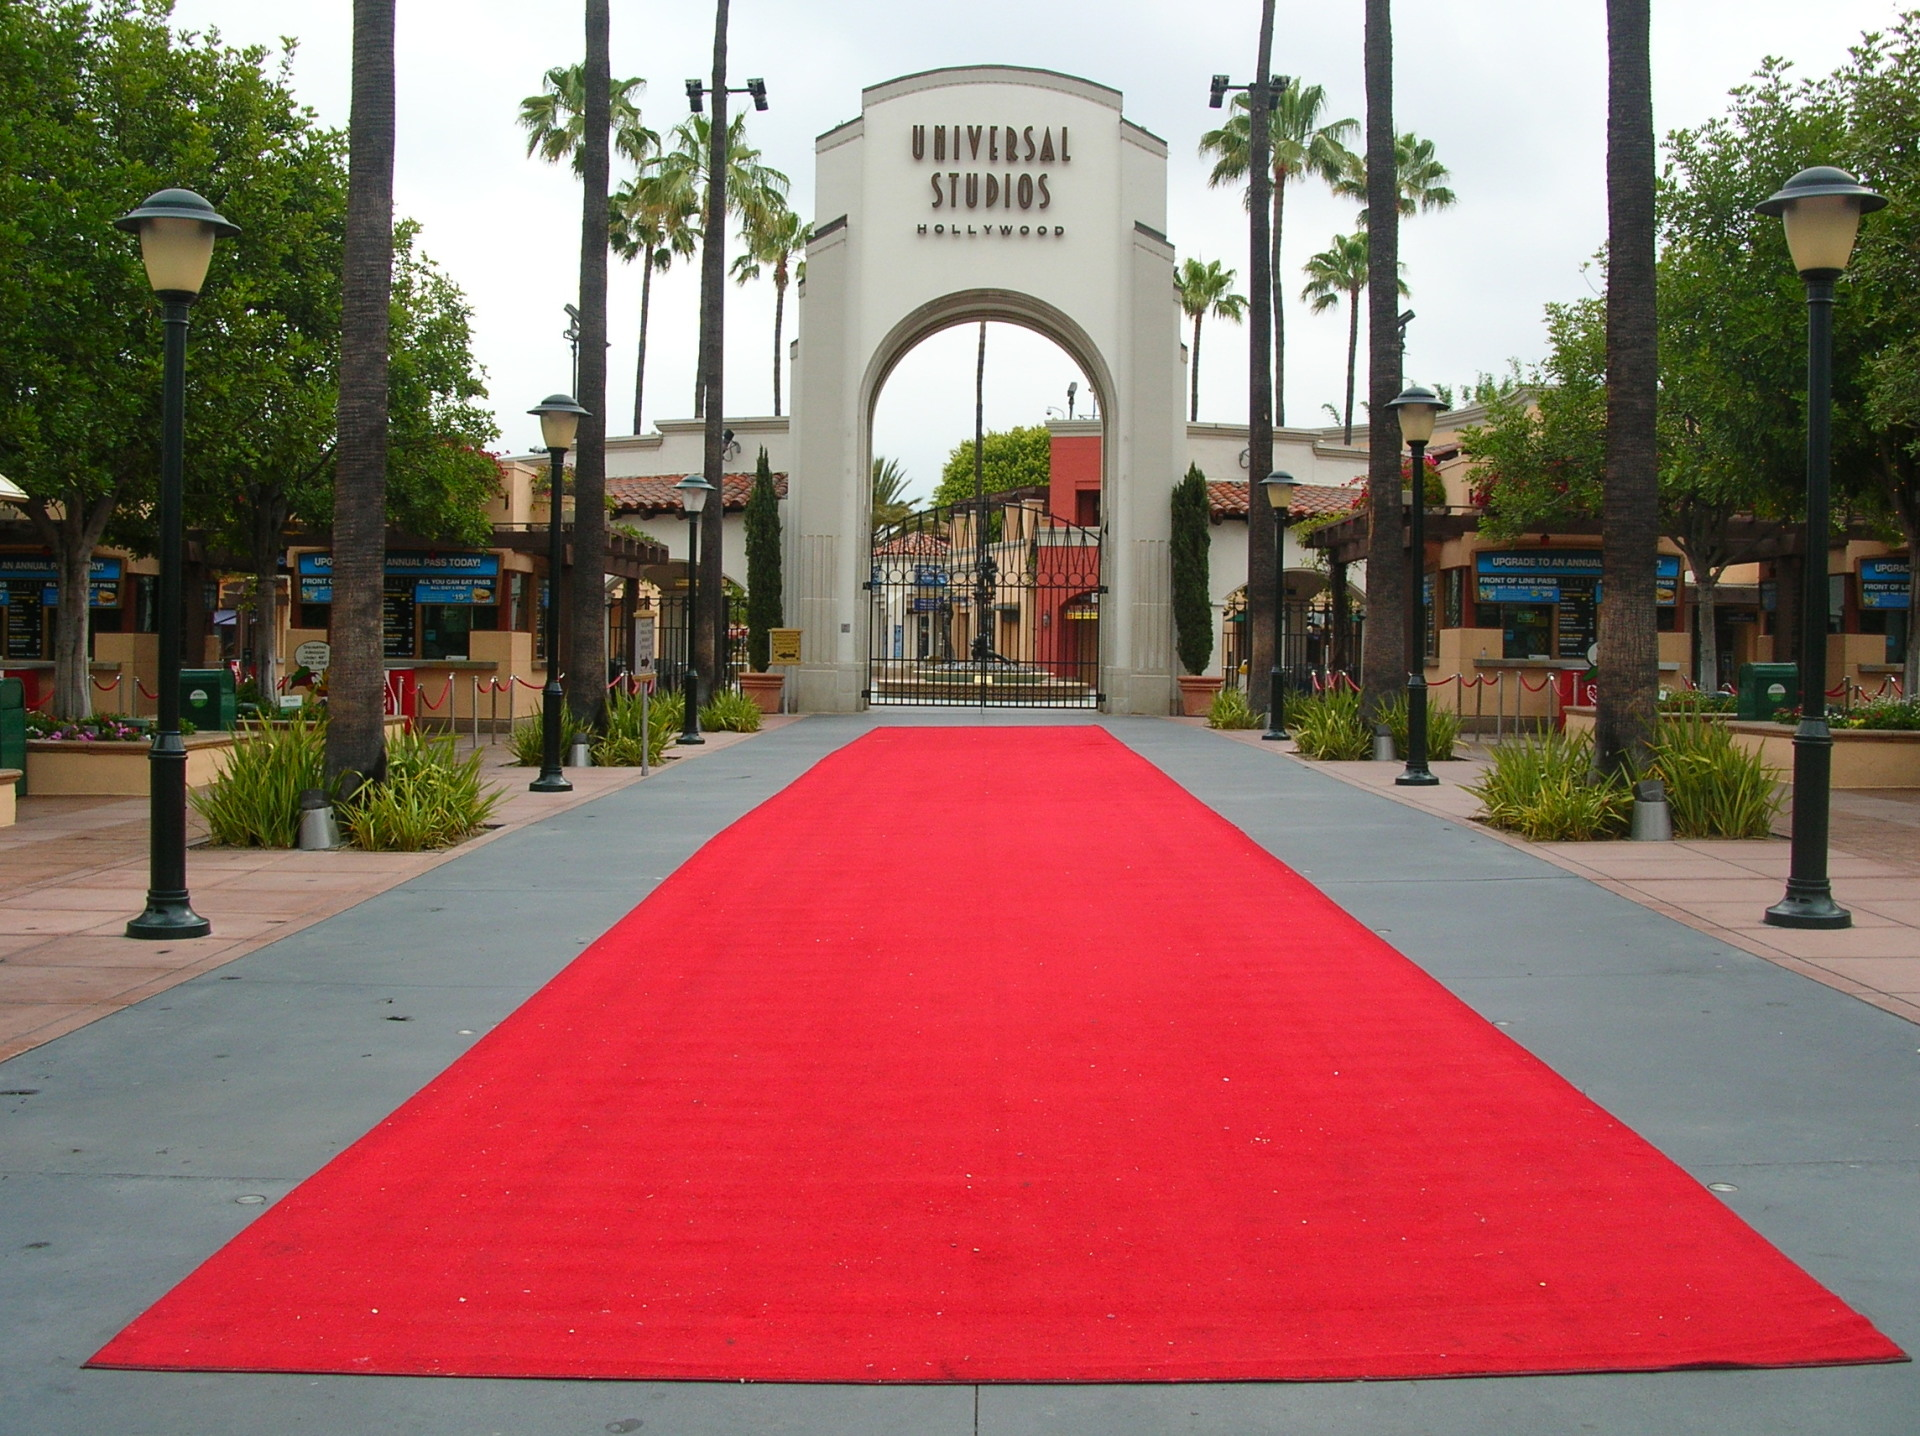 outdoor red carpet at universal